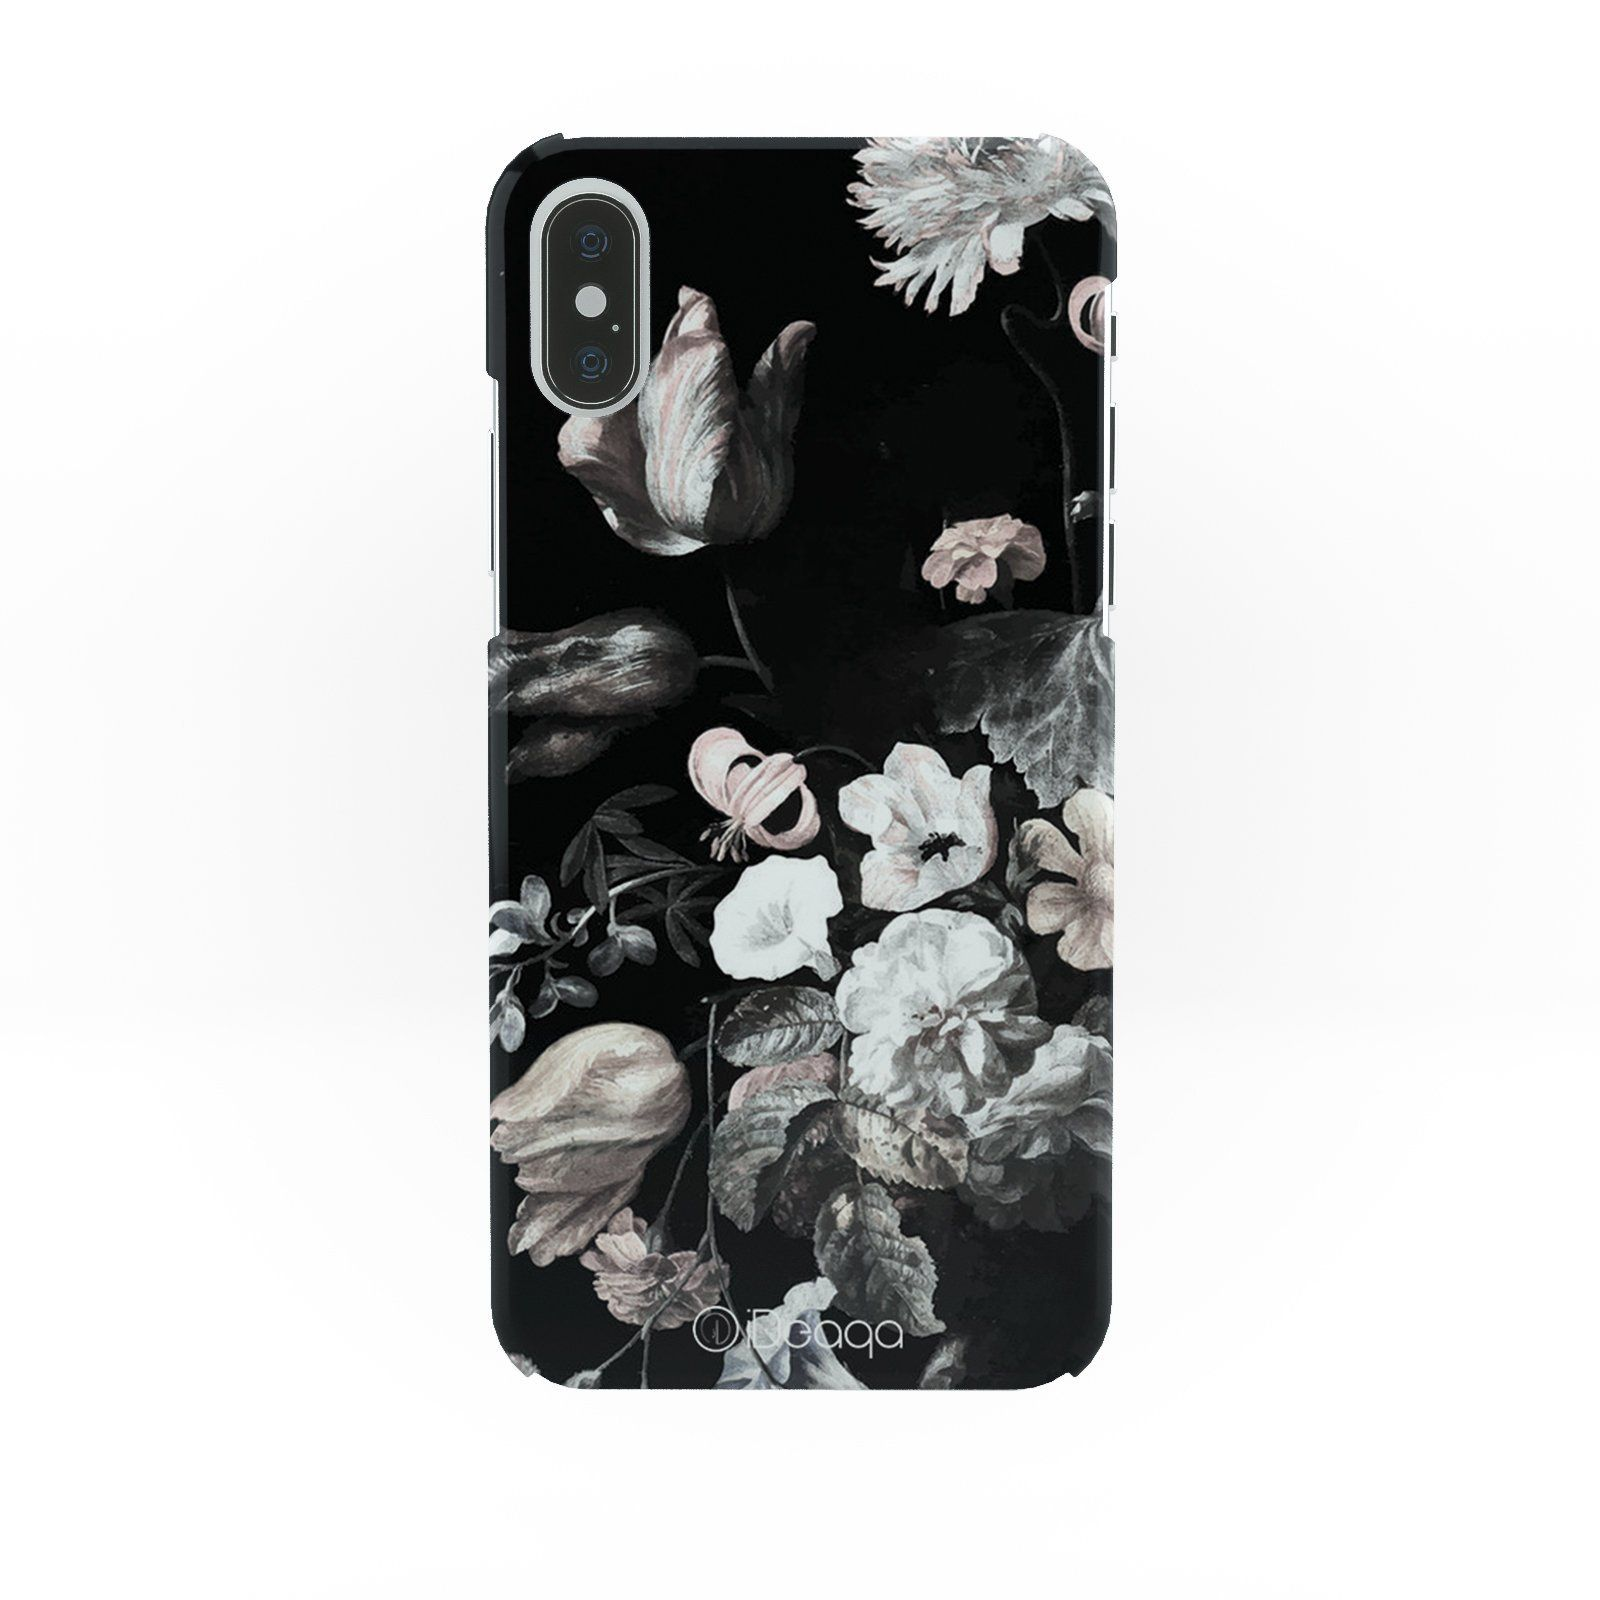 online store 91b1f f1e08 iDeaqa Black Flowers And White Floral Protective Hard Case Cover For ...